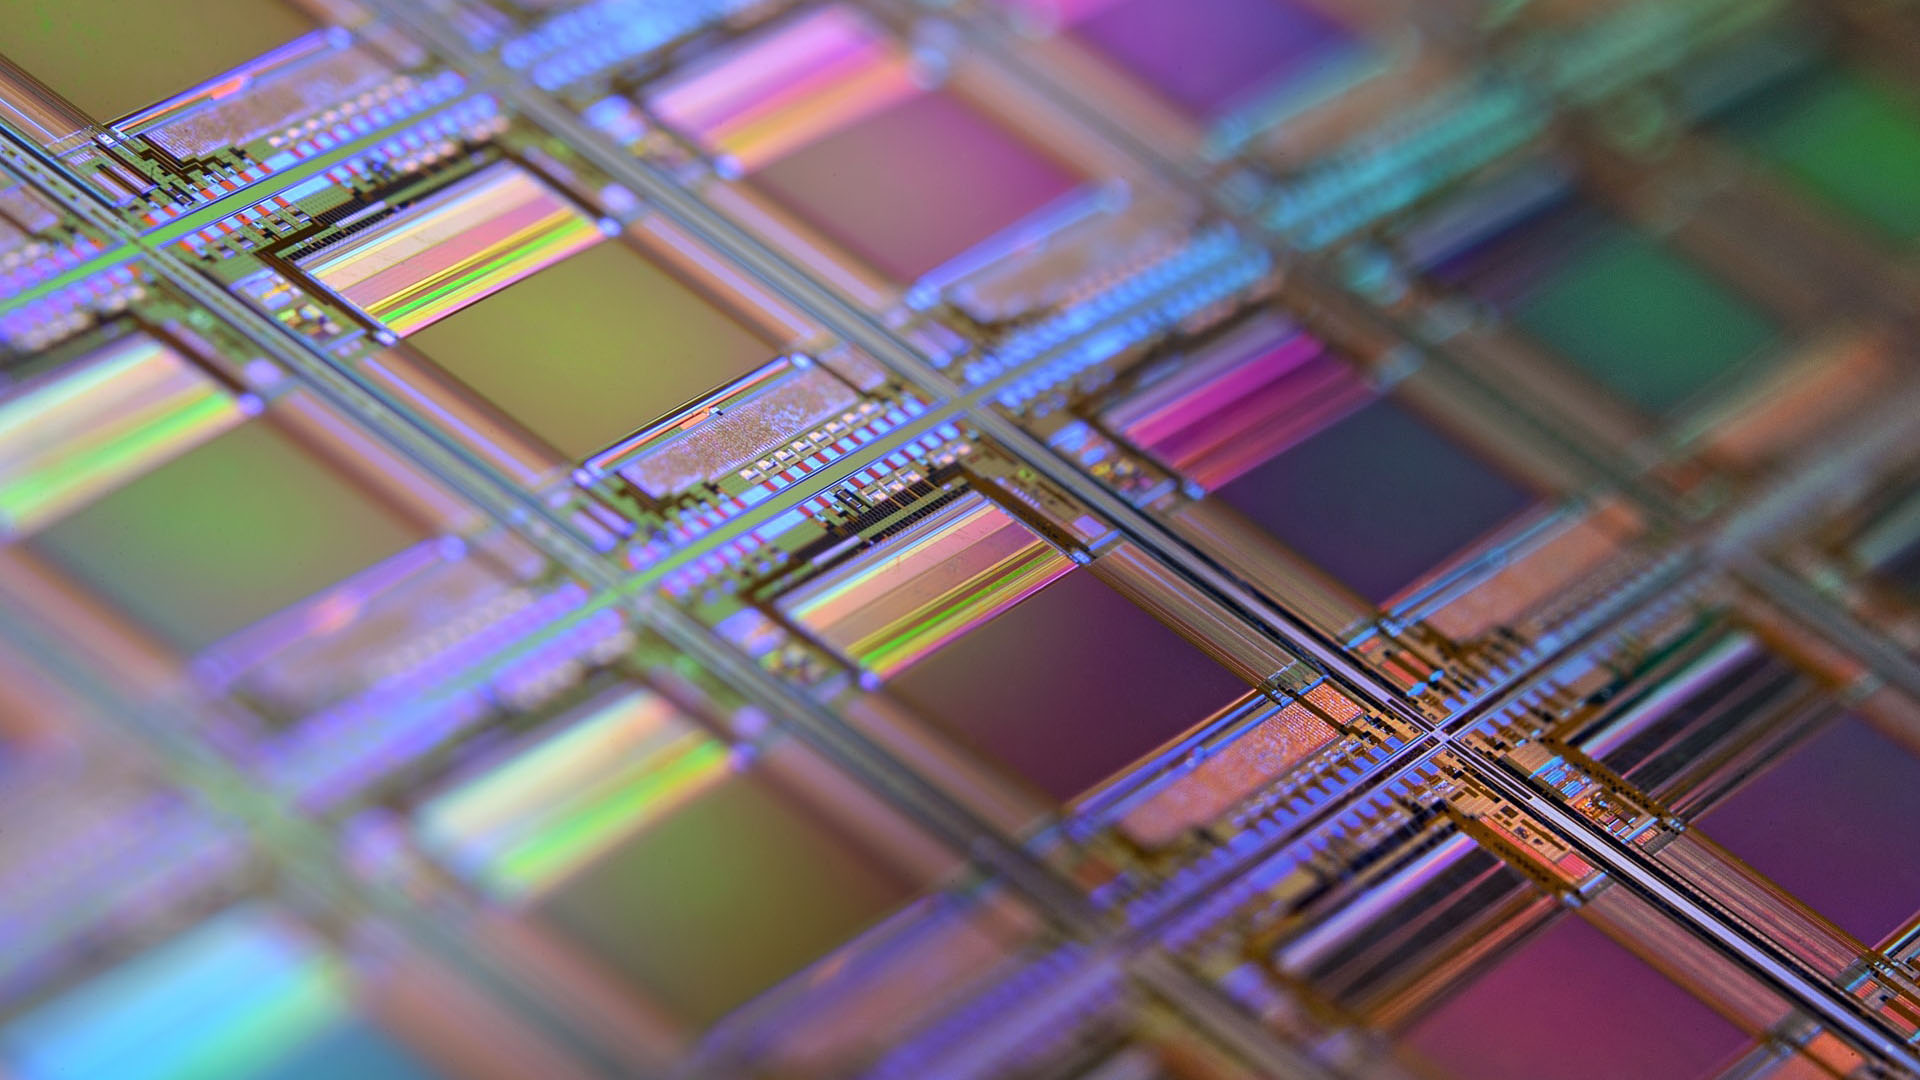 A macro of a silicon wafer. Each shiny coloured square is a chip with microscopic transistors and circuits.